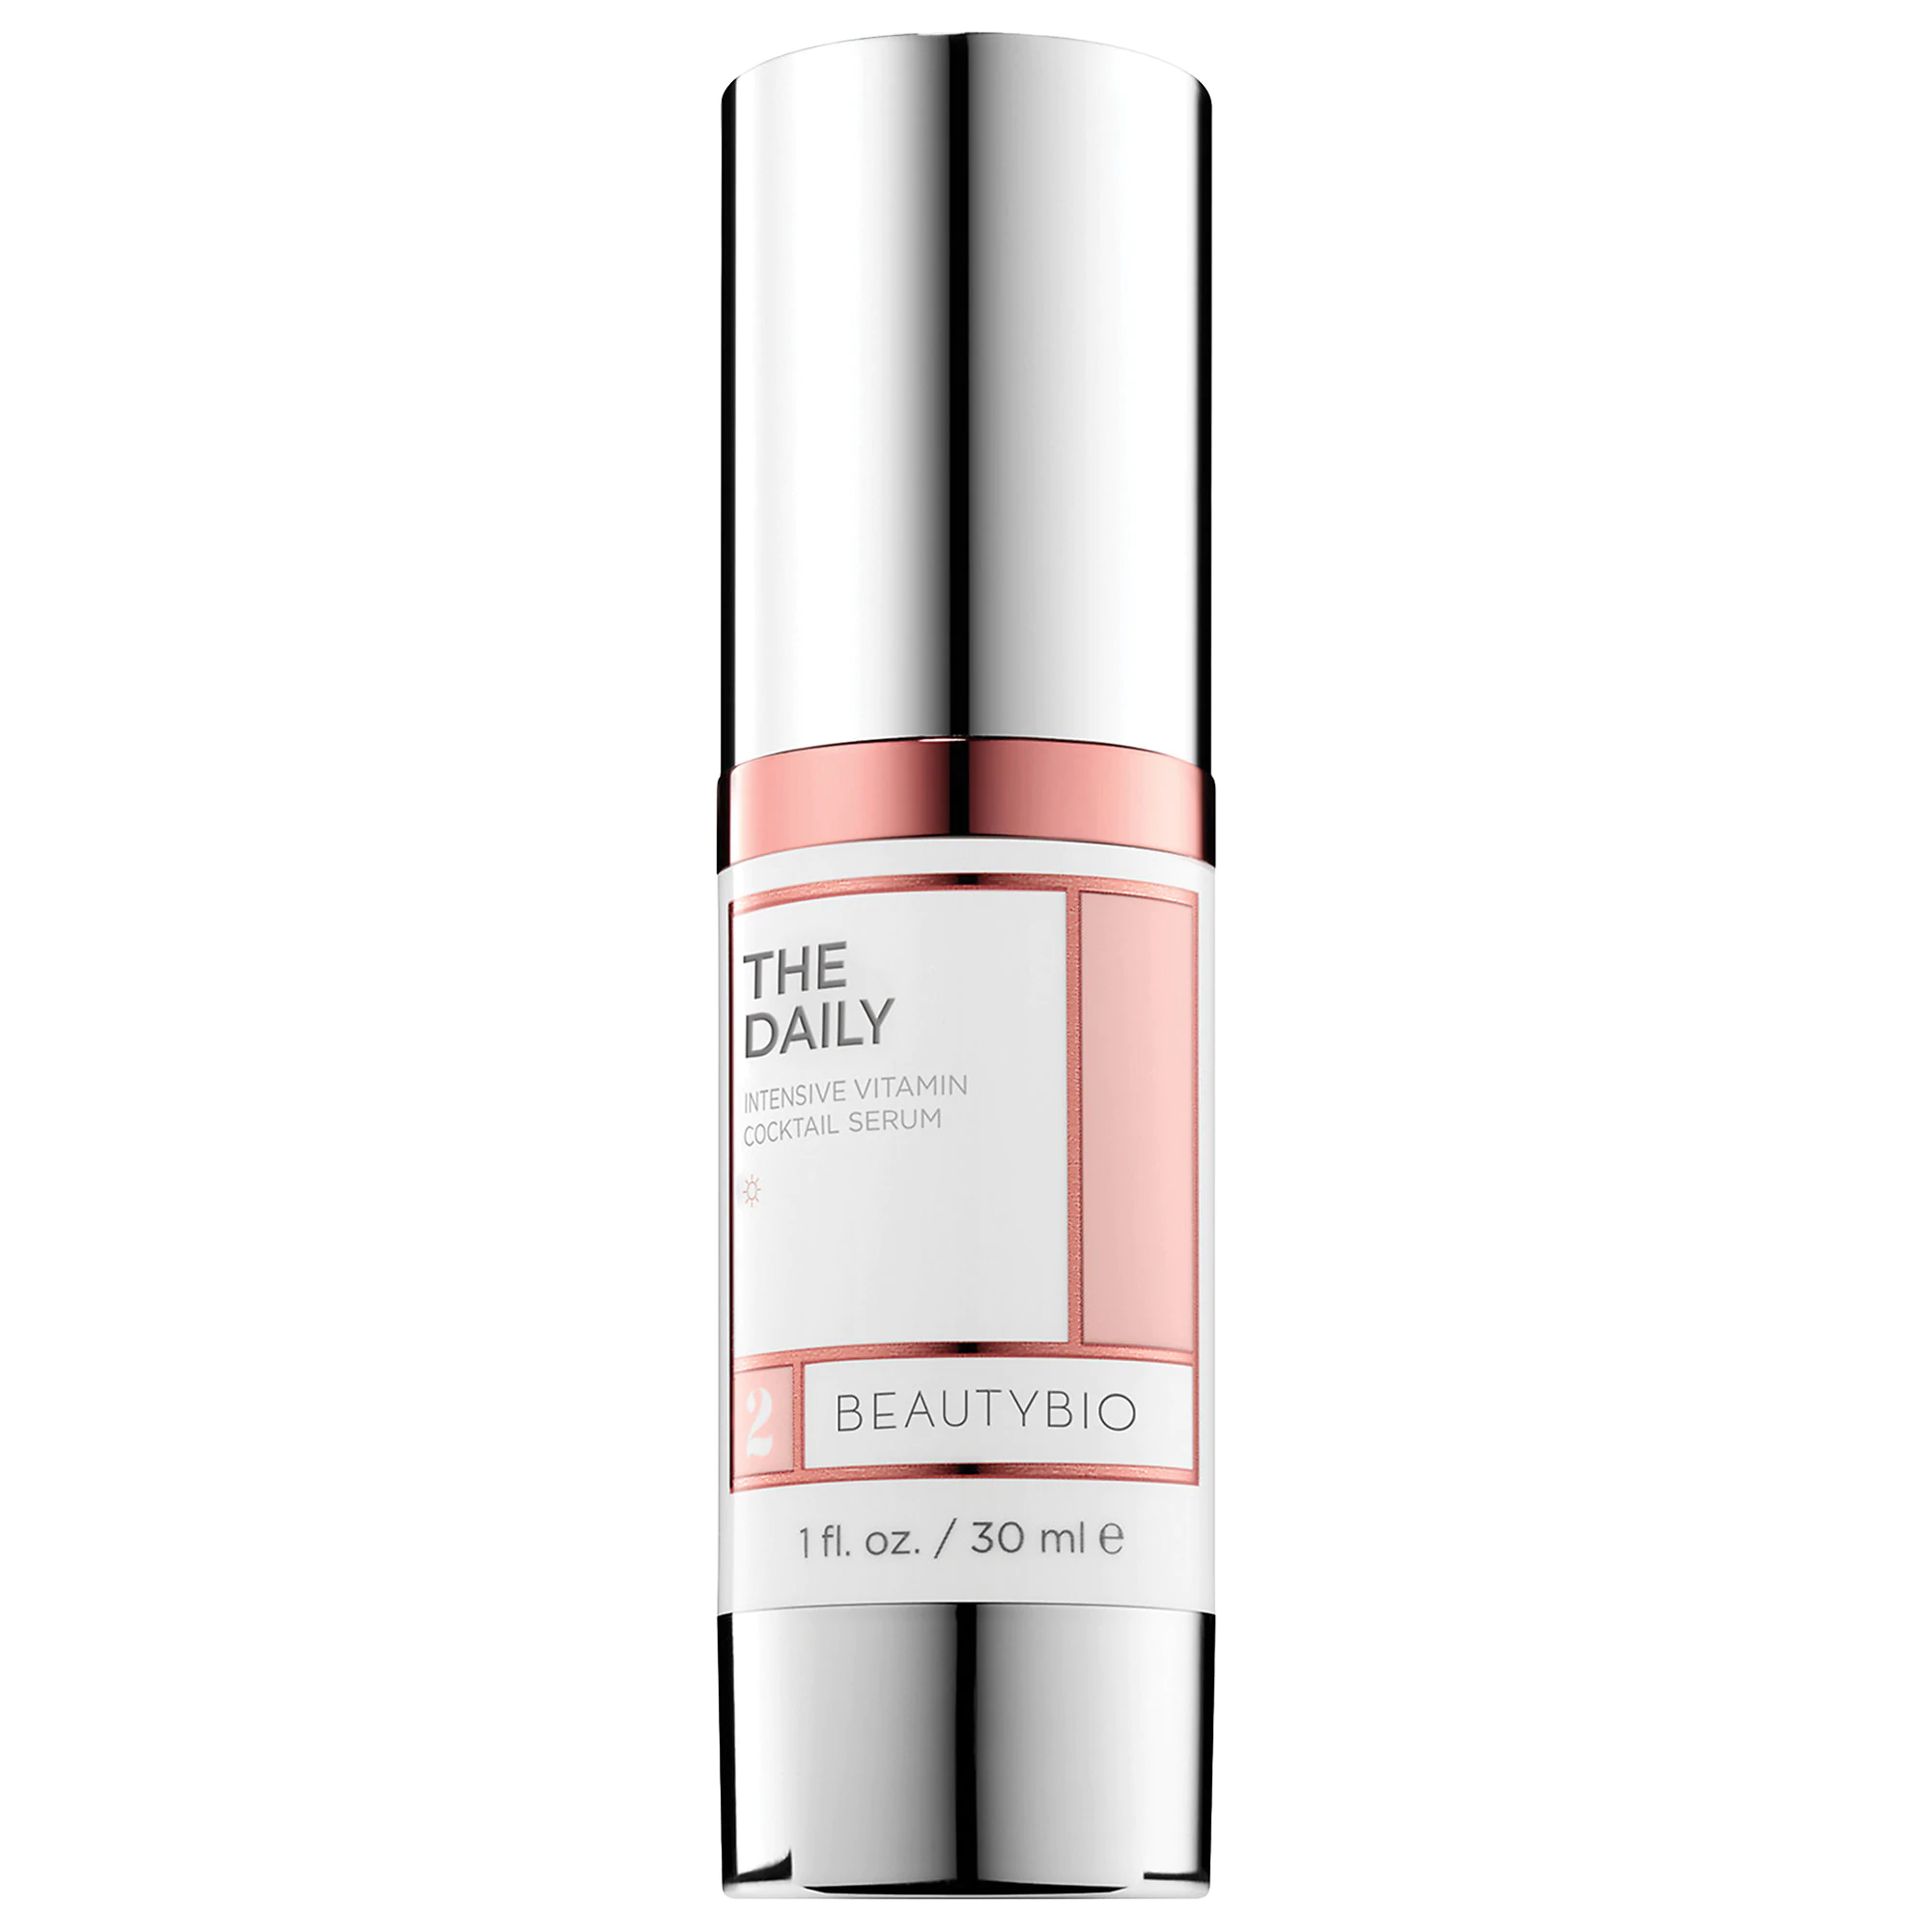 BeautyBio The Daily Vitamin C Day Serum With Antioxidant Complex